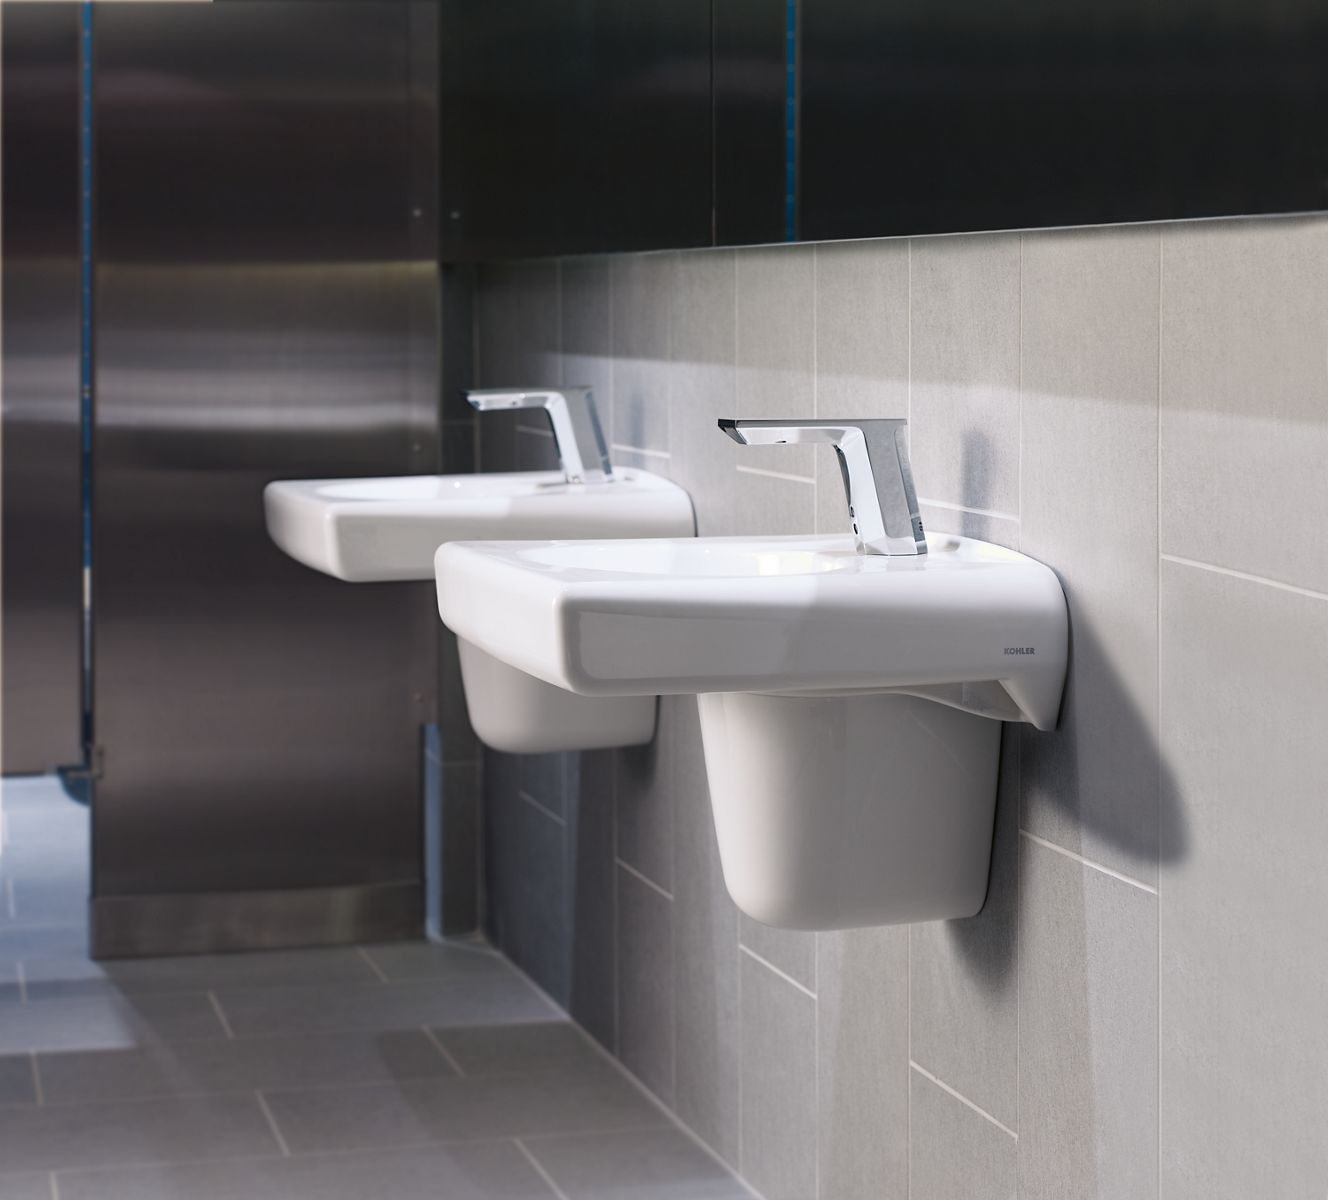 Handicap Bathroom Sink Ada Compliant Products | Kohler